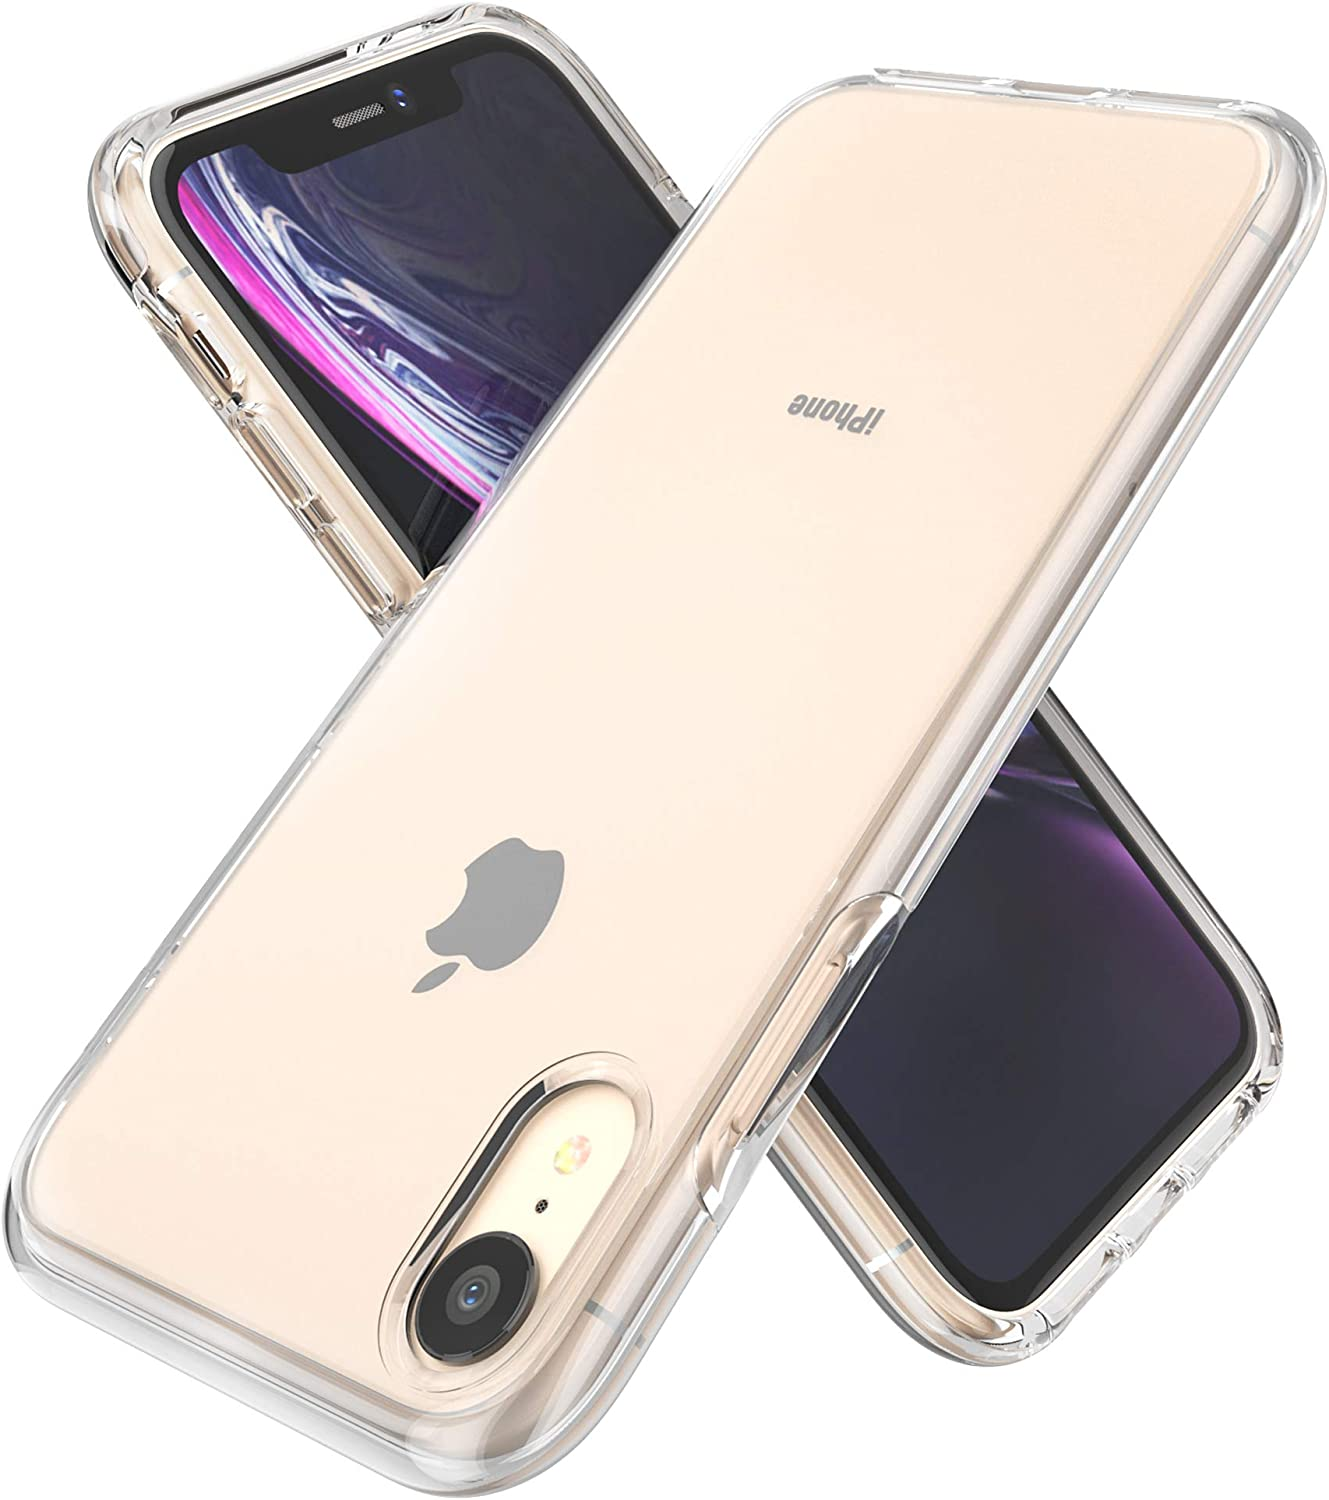 GPFILE iPhone XR Case Clear Thin Slim Protective Anti-Scratch Shockproof Case for iPhone XR 6.1 Inch (2018) - Clear